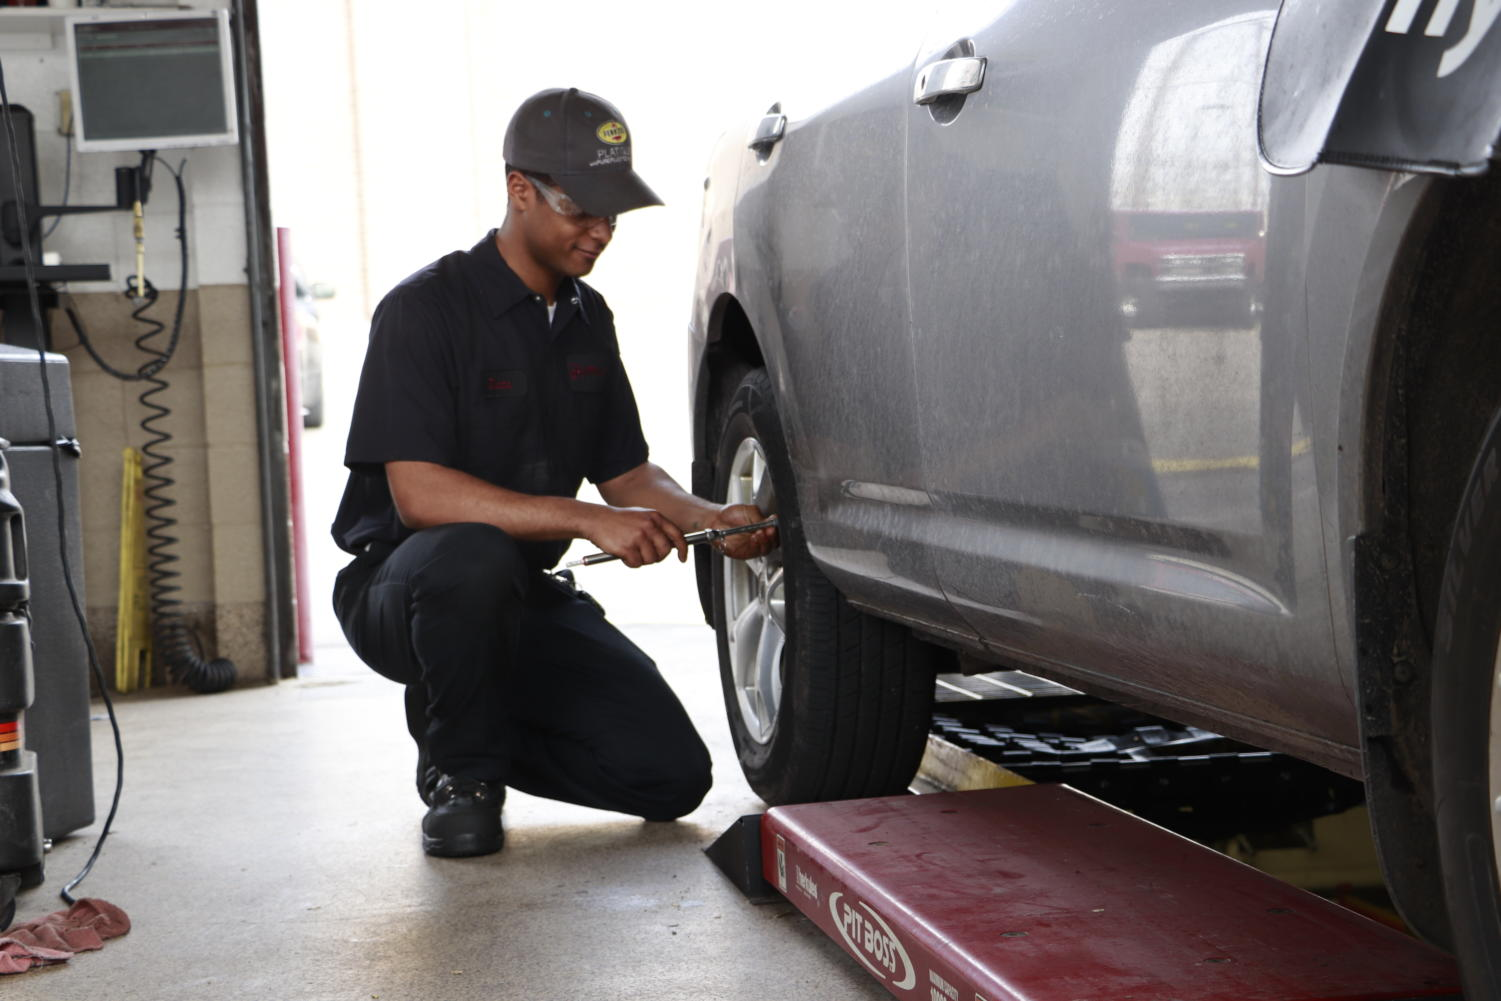 Diata Whitfield works on a car at Jiffy Lube